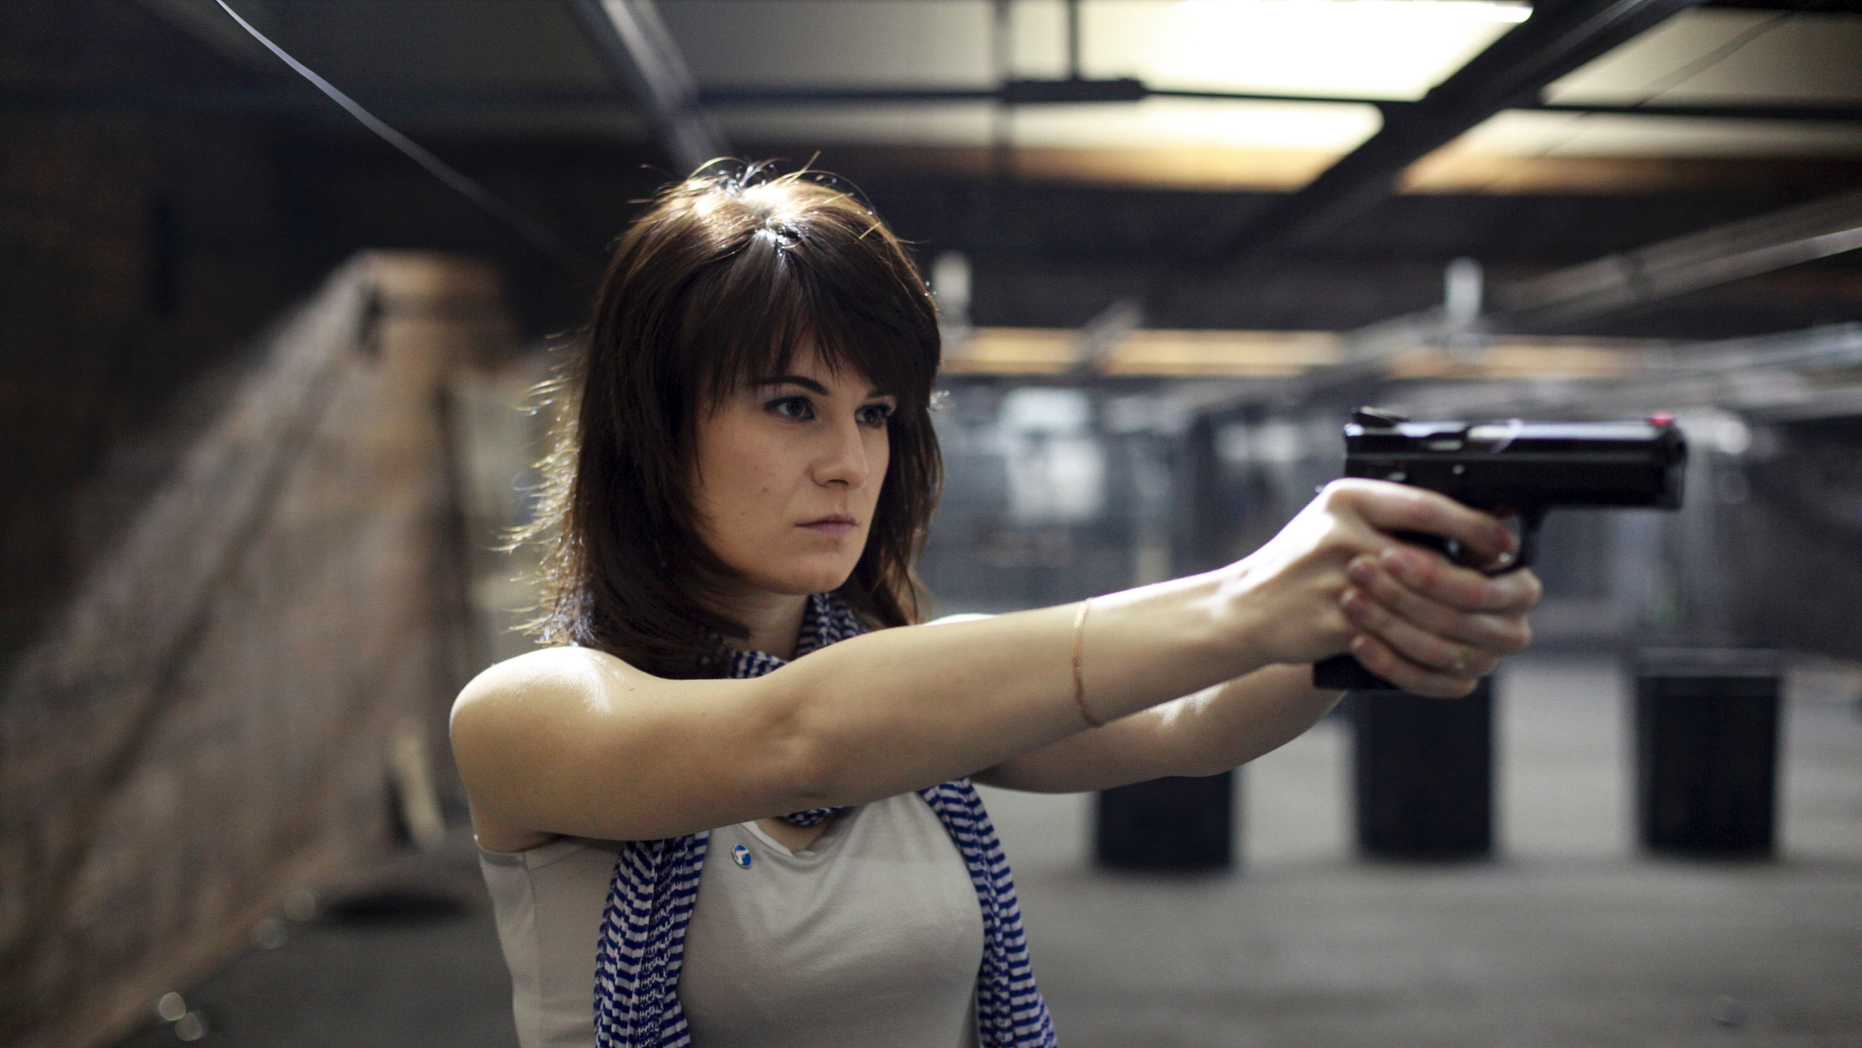 FILE- In this file photo dated Sunday, April 22, 2012, Maria Butina, a gun-rights activist poses for a photo at a shooting range in Moscow, Russia. Russian woman Maria Butina has been jailed in the U.S. on charges that she tried to infiltrate U.S. political organizations as a covert Russian agent, and her father, Valery Butin, told Rossiya TV on Friday Sept. 21, 2018, that the U.S. authorities have eased her prison regime, that jeopardized her health. (AP Photo/Pavel Ptitsin, File)